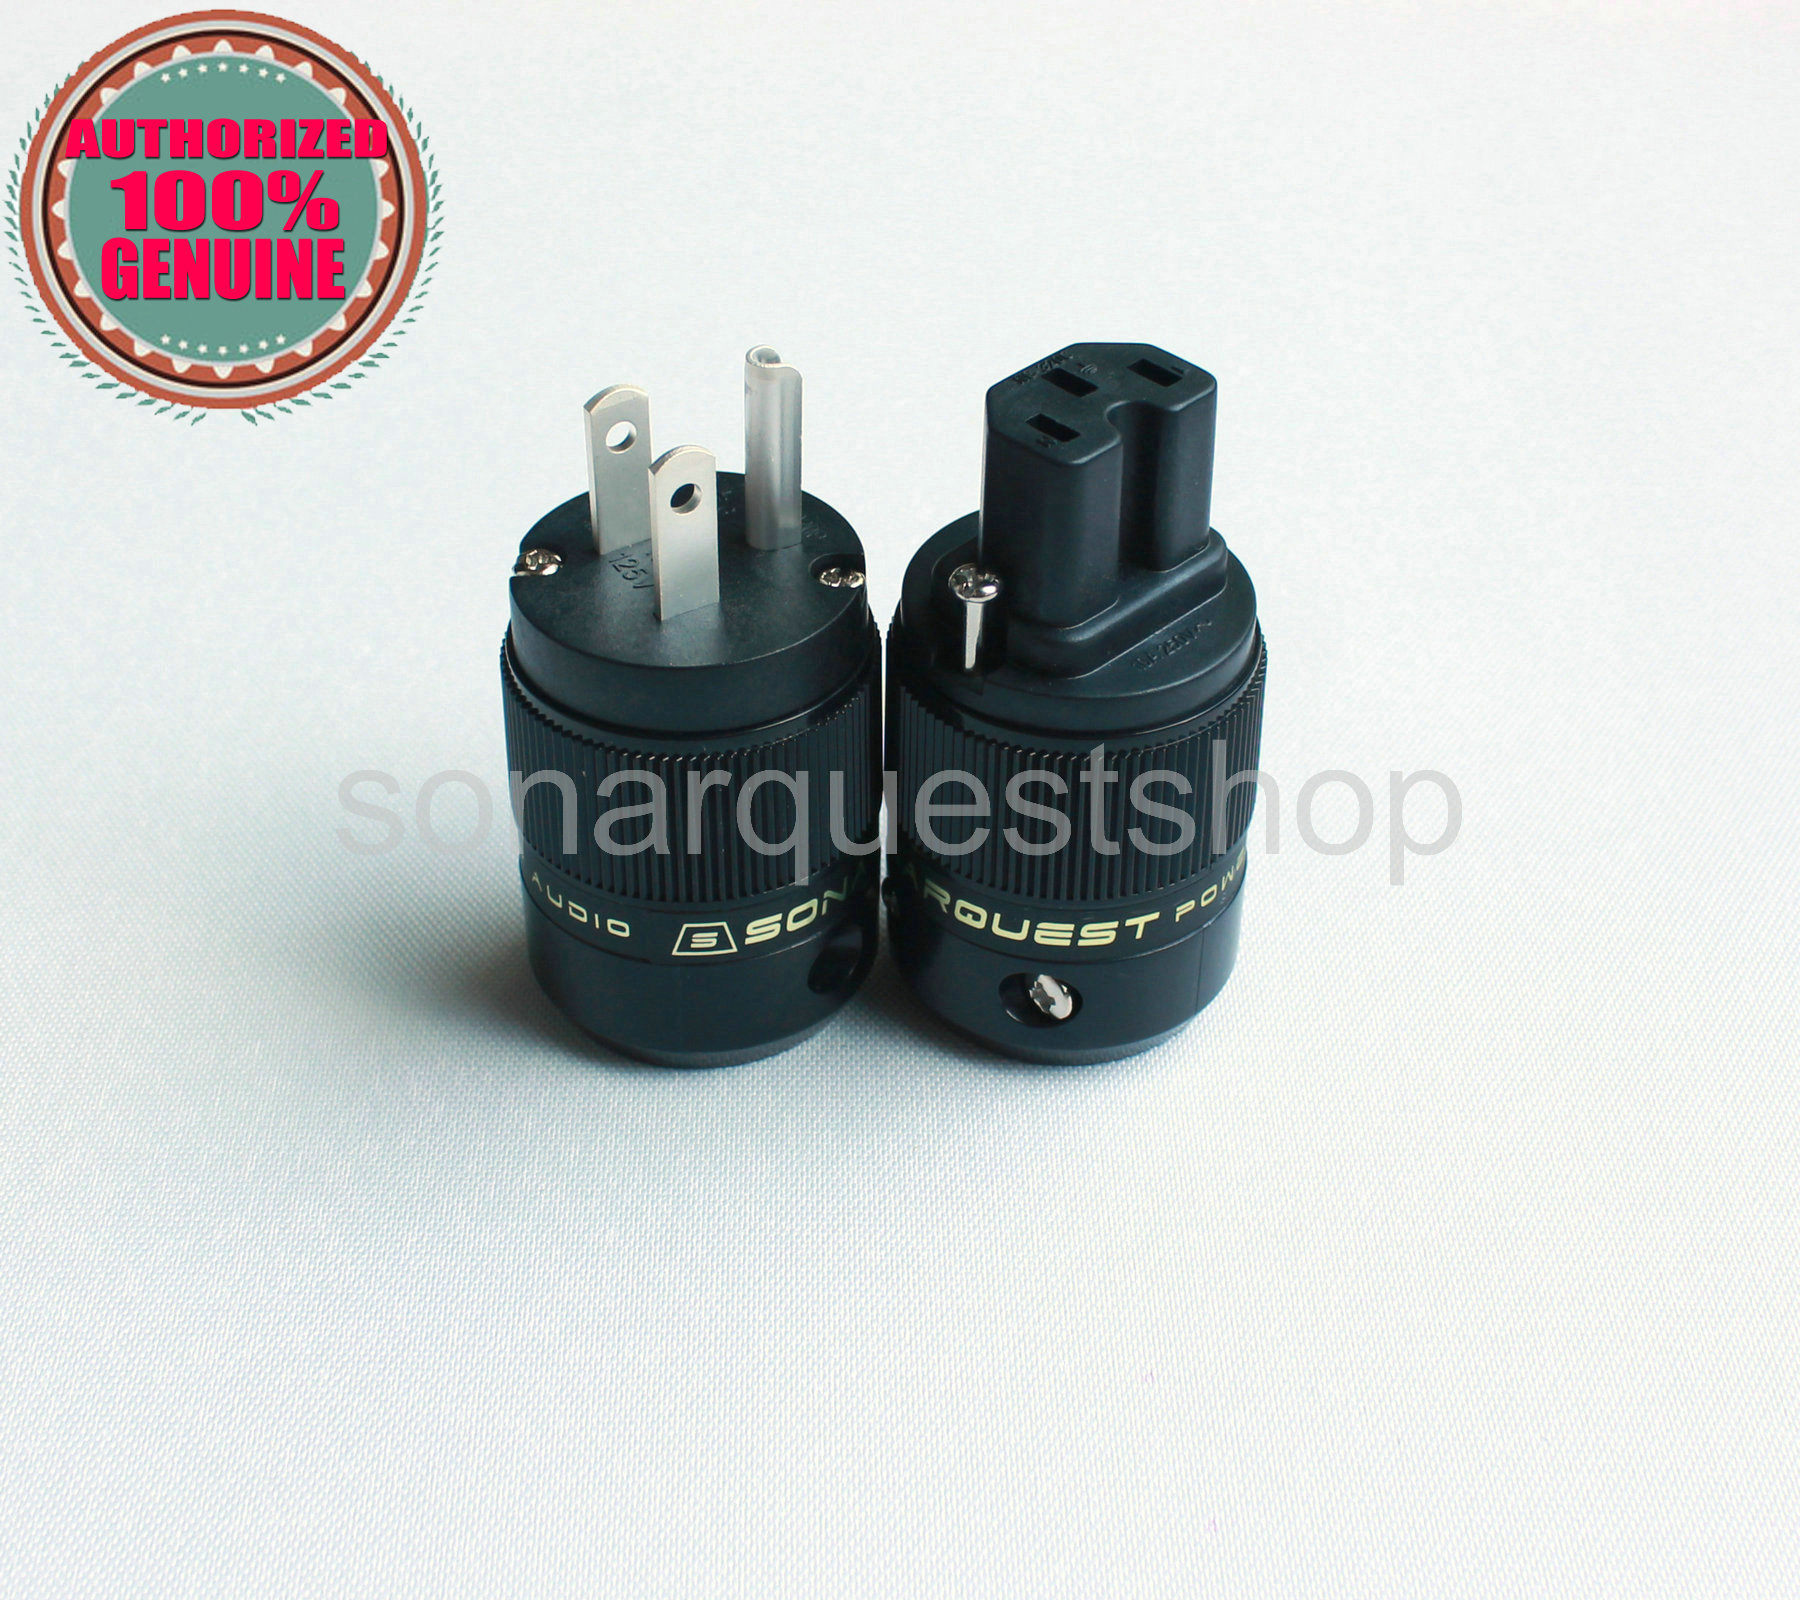 SONARQUEST SE-AgP(B) + SE-AgC(B) Silver Plated US ALL Black Power Plug & IEC